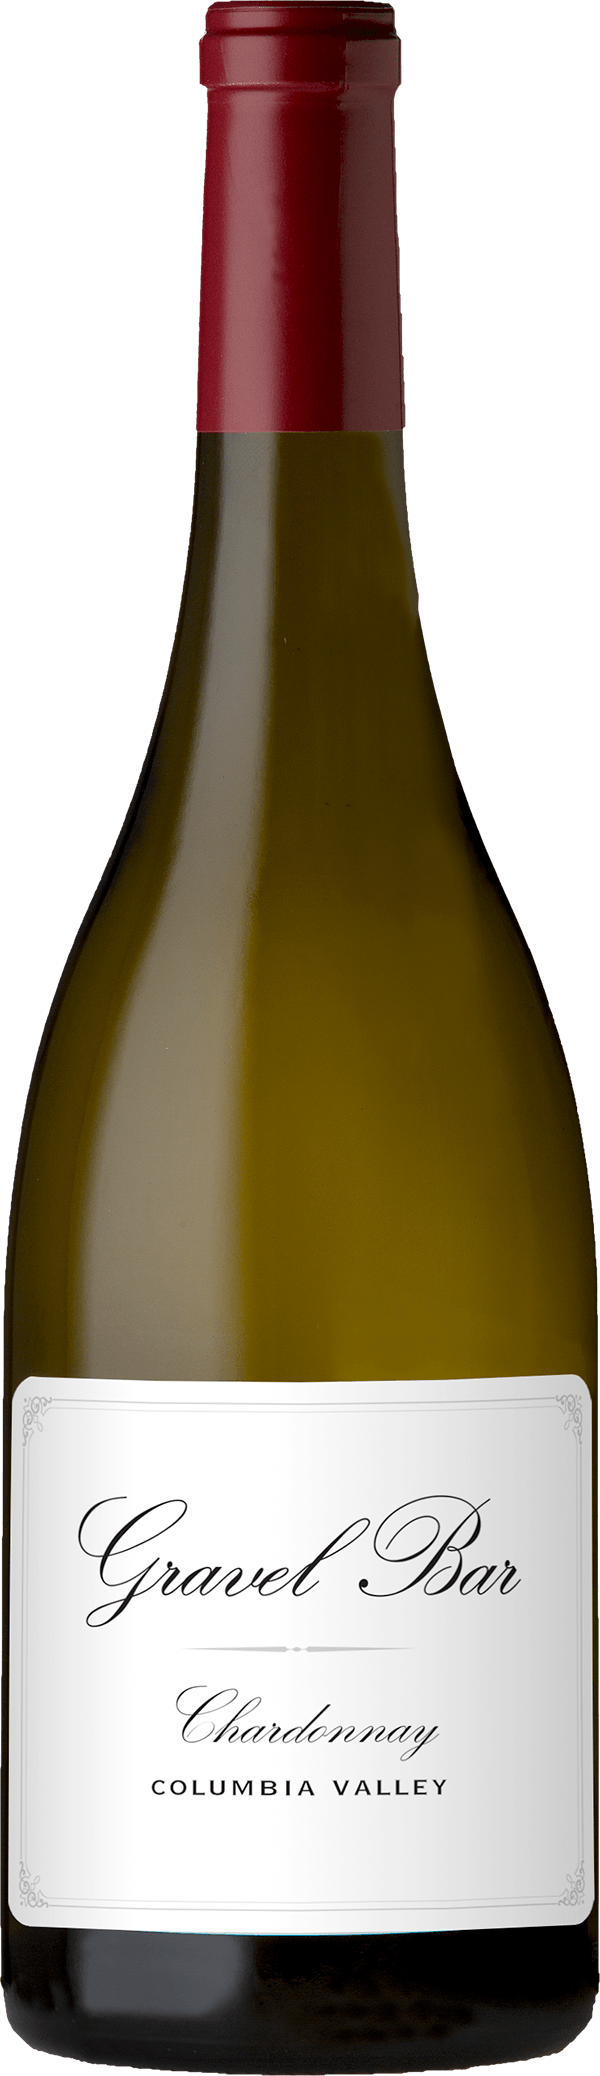 A bottle of the Chardonnay